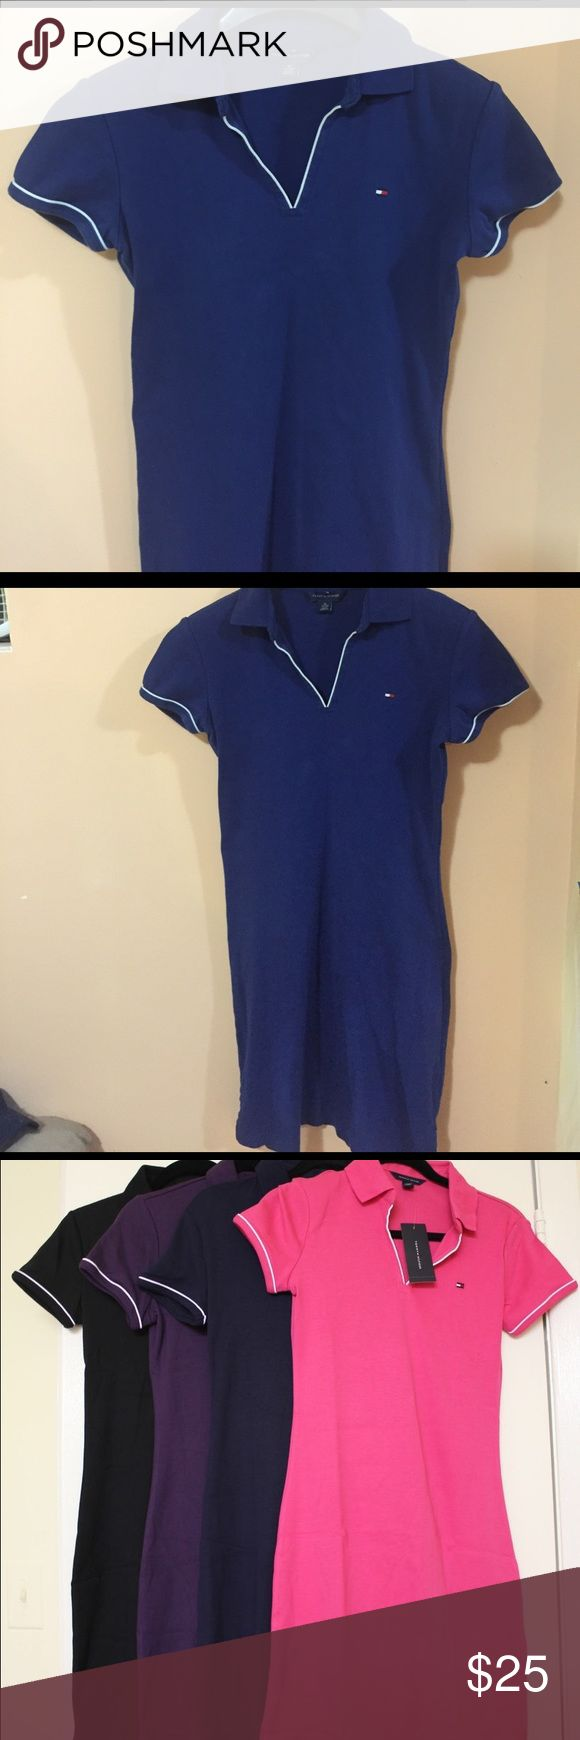 Tommy Hilfiger Polo Dress Worn once or twice! Its not a tight fitting dress, more like tennis style but up to knees. 100% cotton, color is deep blue! The other pics just for an example. Tommy Hilfiger Dresses Midi